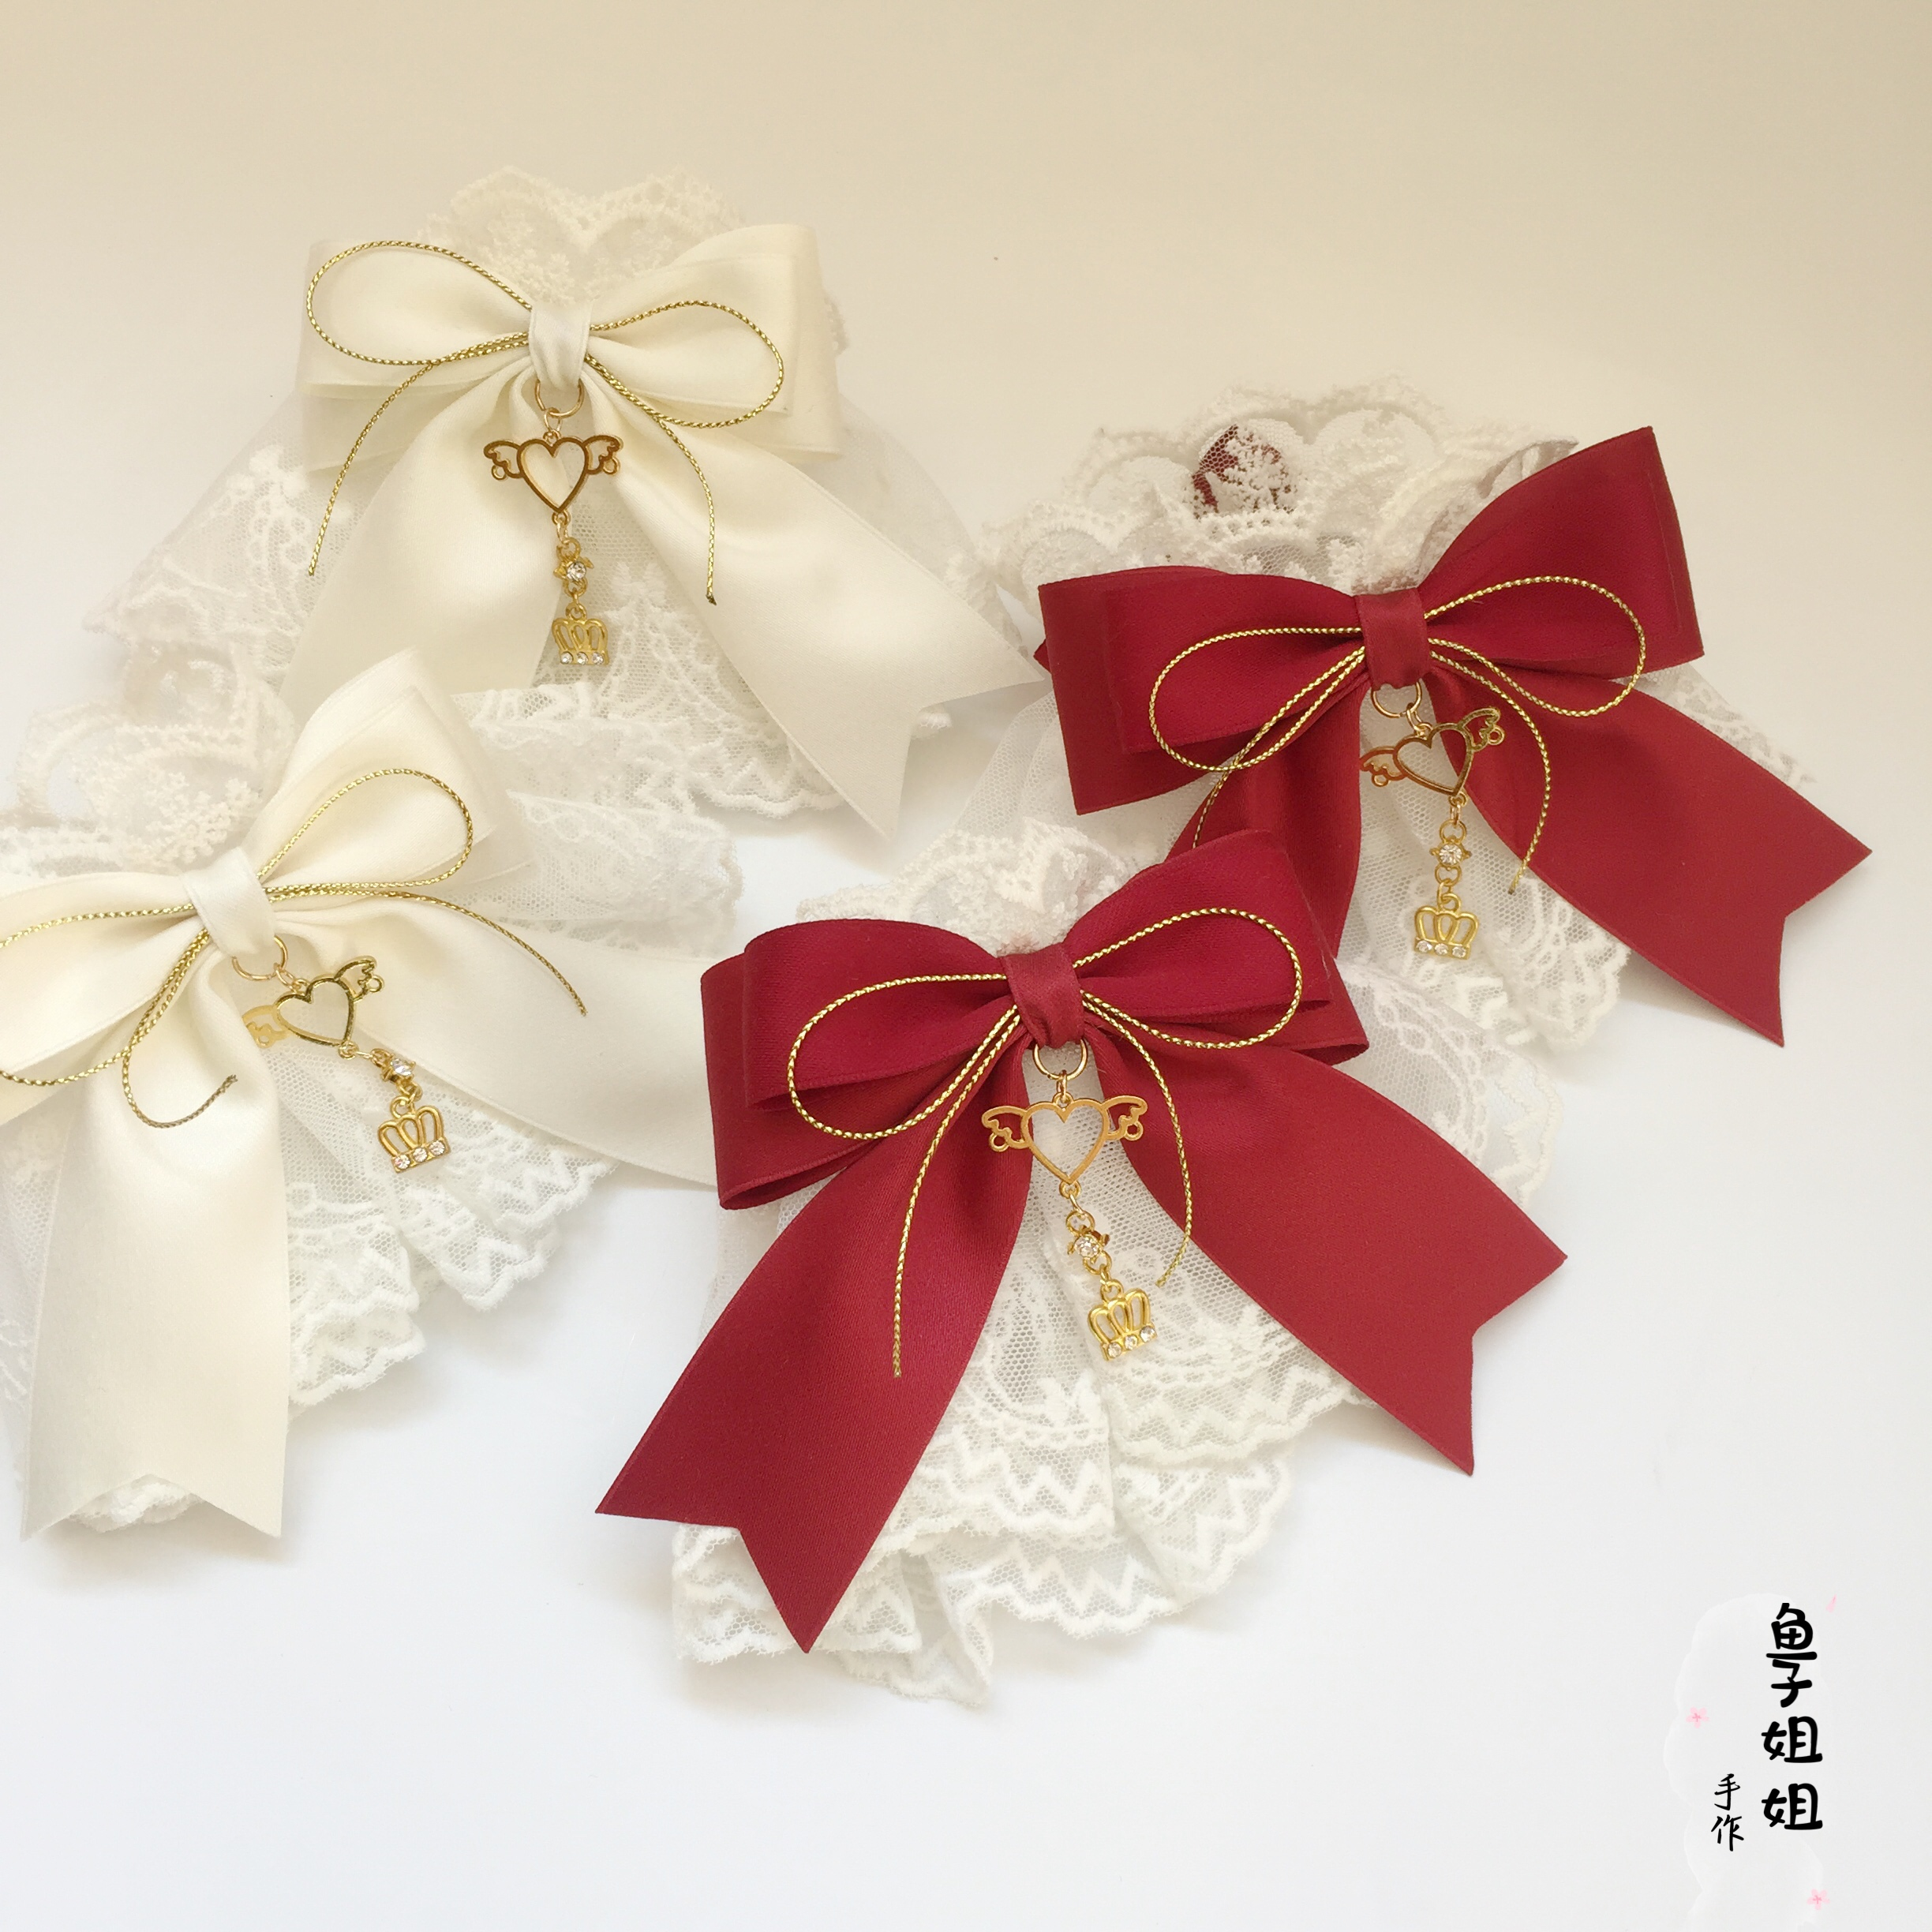 Lolita Hand Made Small Things Bride White Lace Elastic Hand Cuff Lolita Dark RED Bow Hand Cuff